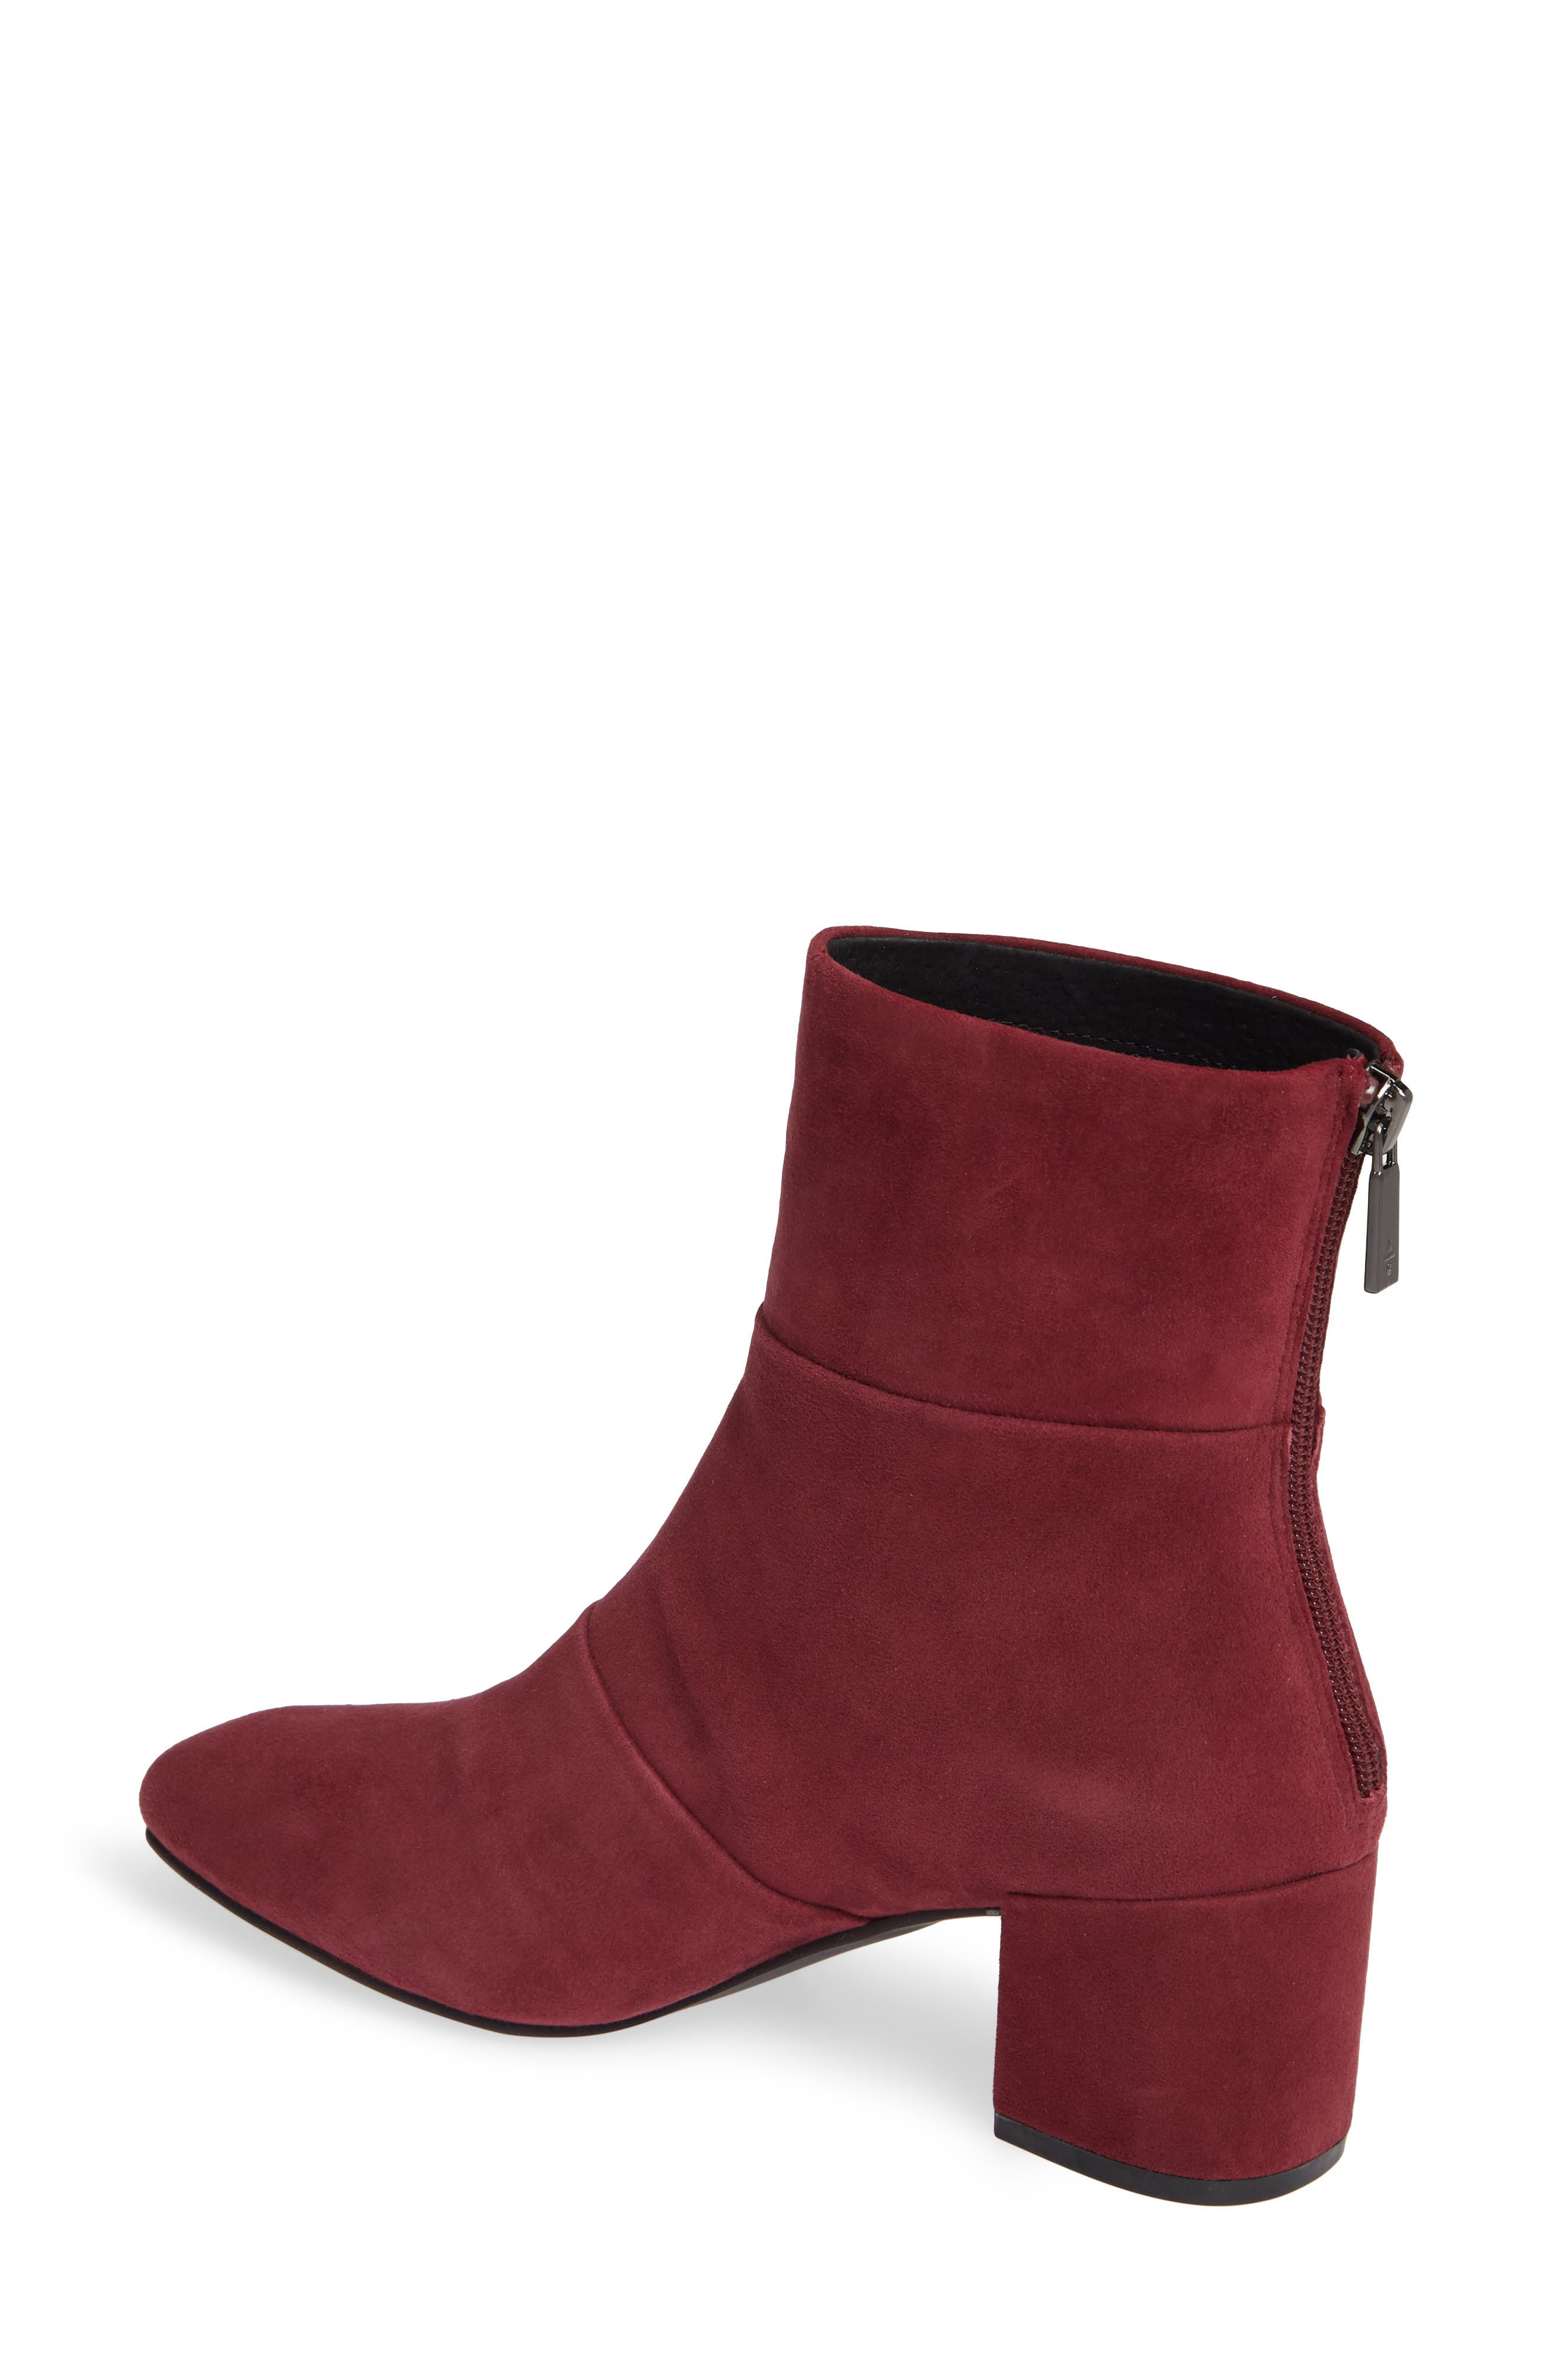 Eryc Bootie,                             Alternate thumbnail 2, color,                             WINE SUEDE